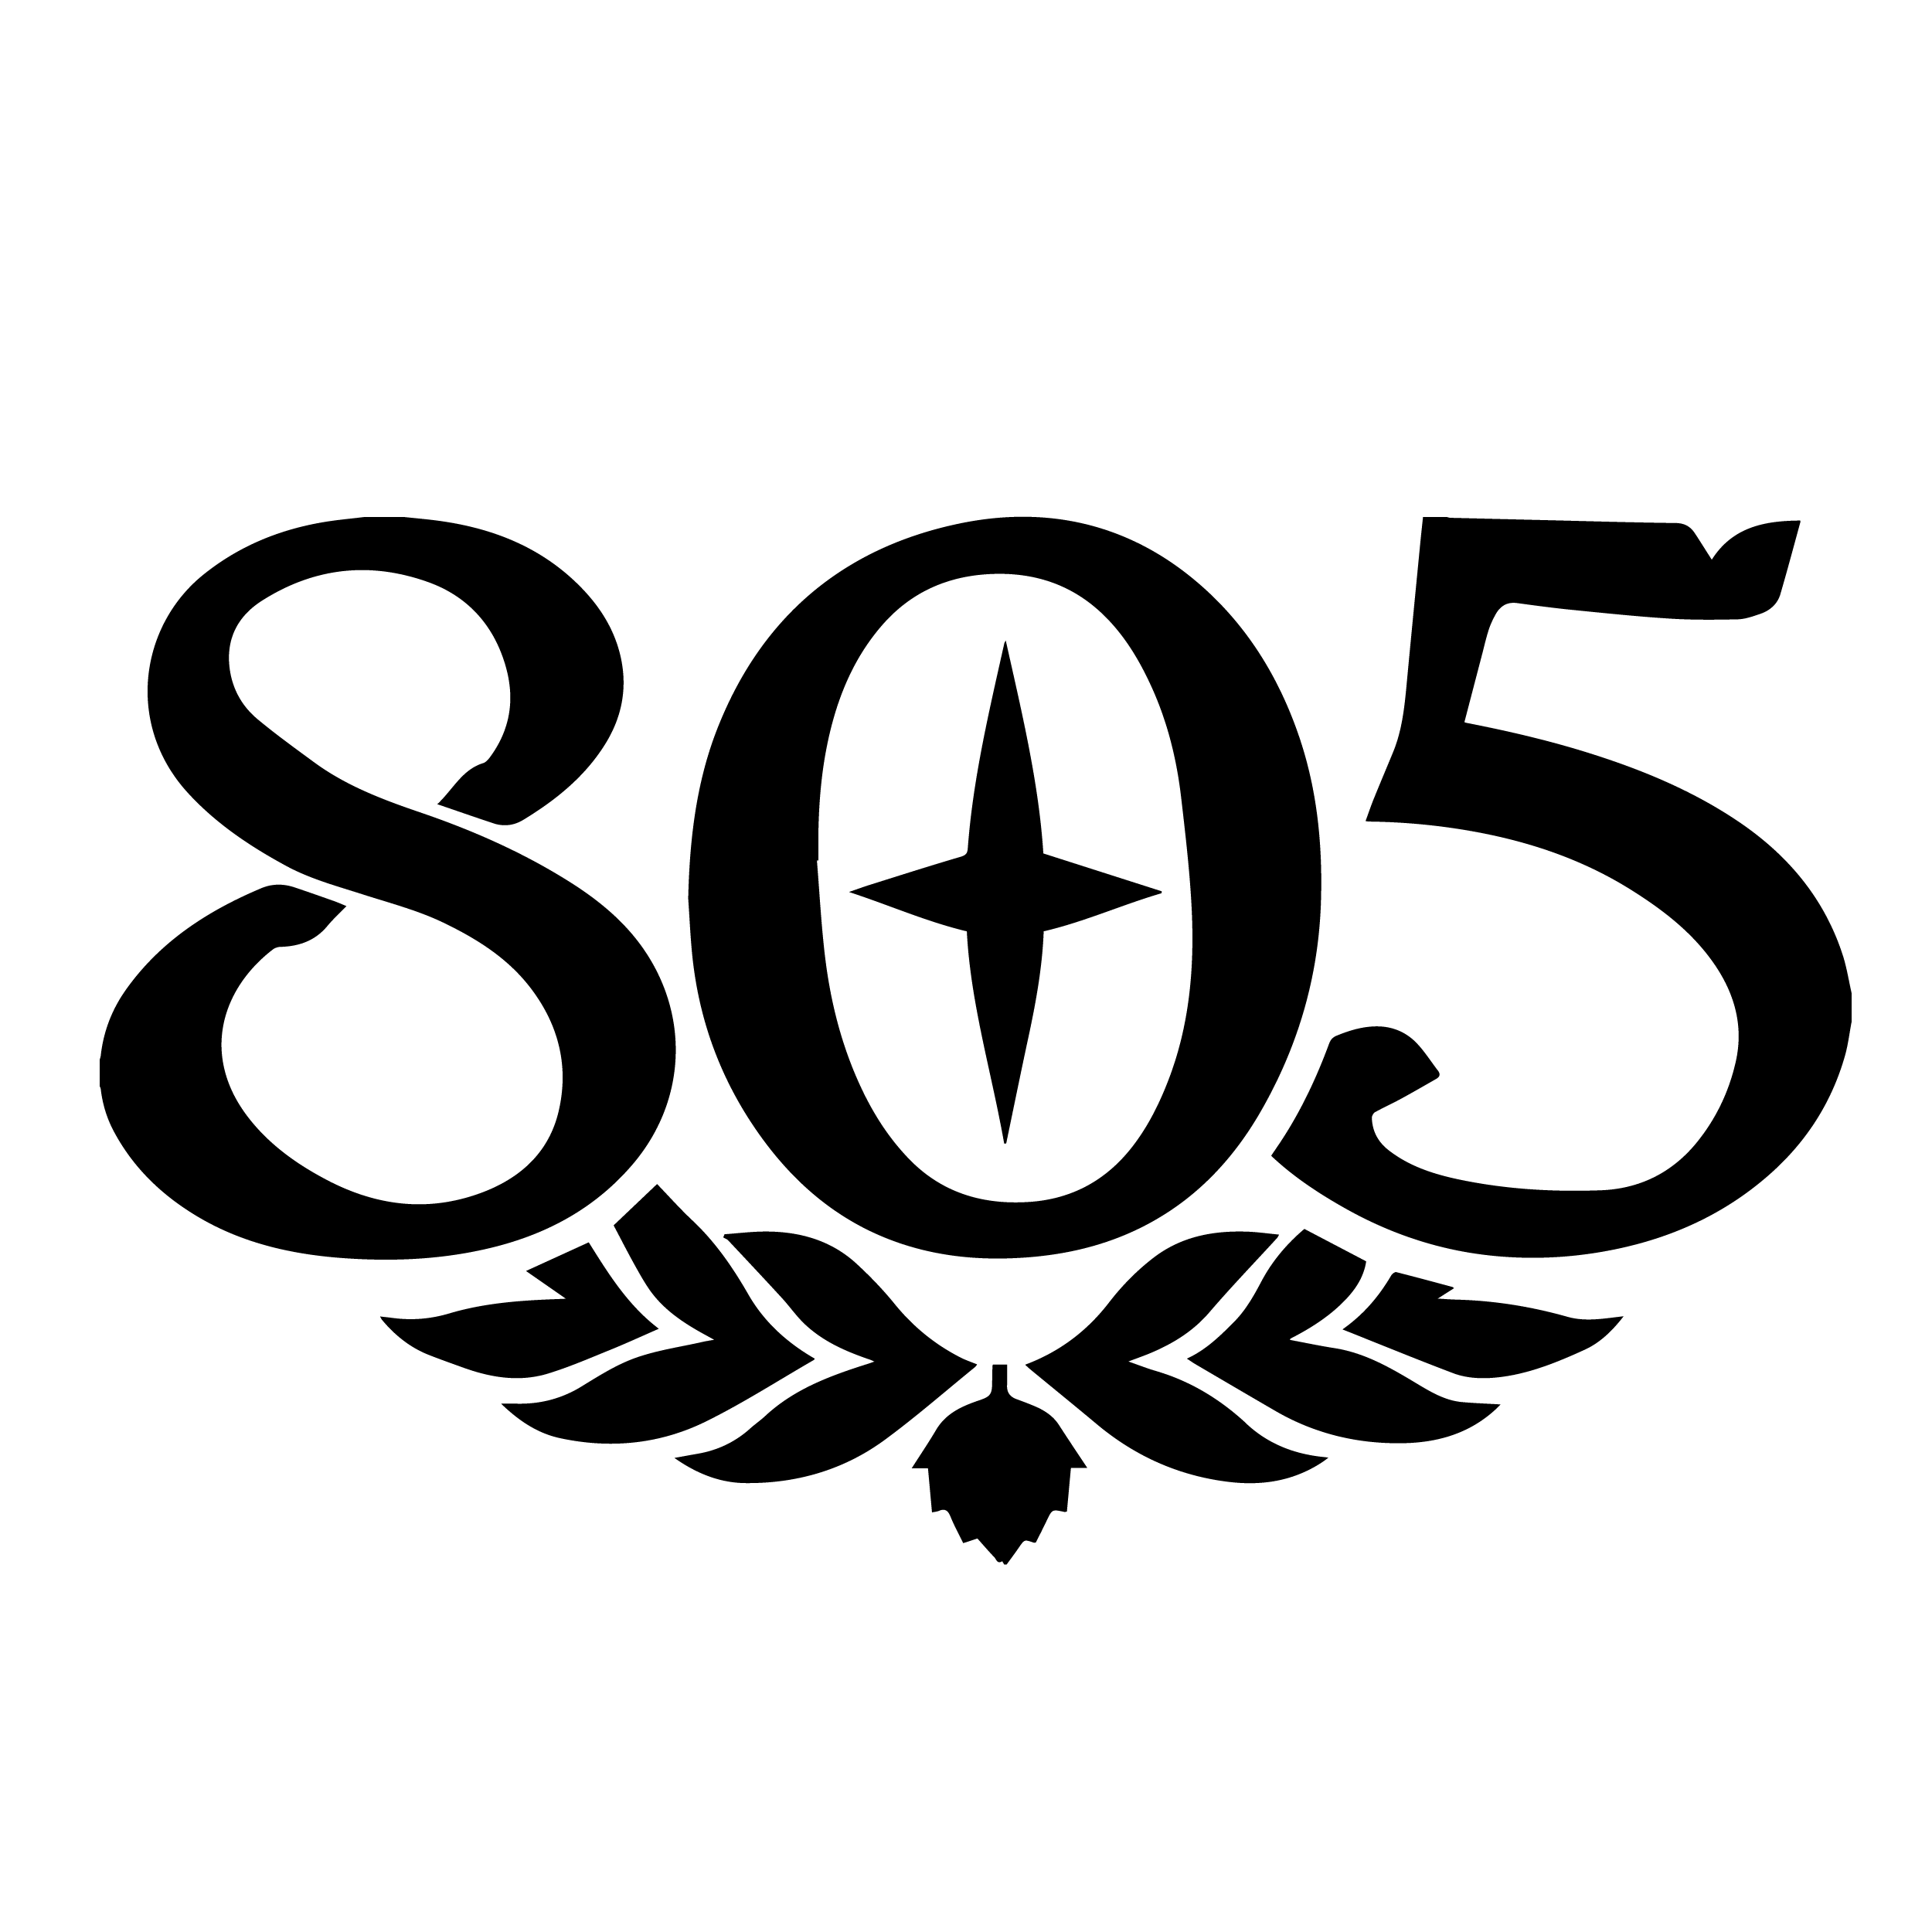 805-01.png